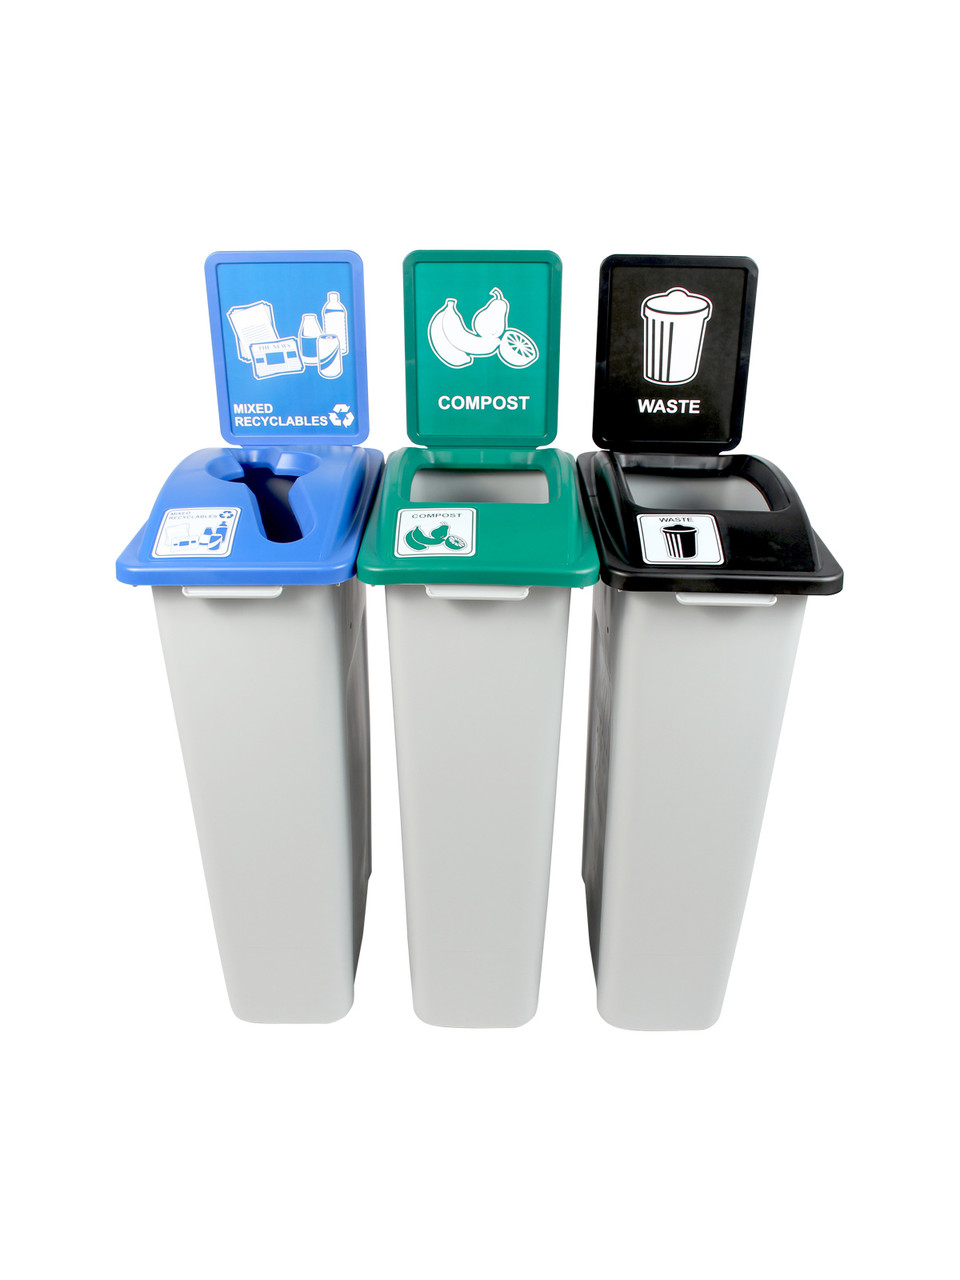 69 Gallon Simple Sort Skinny Recycling Center 8105061-244 (Mixed, Compost, Waste Openings)